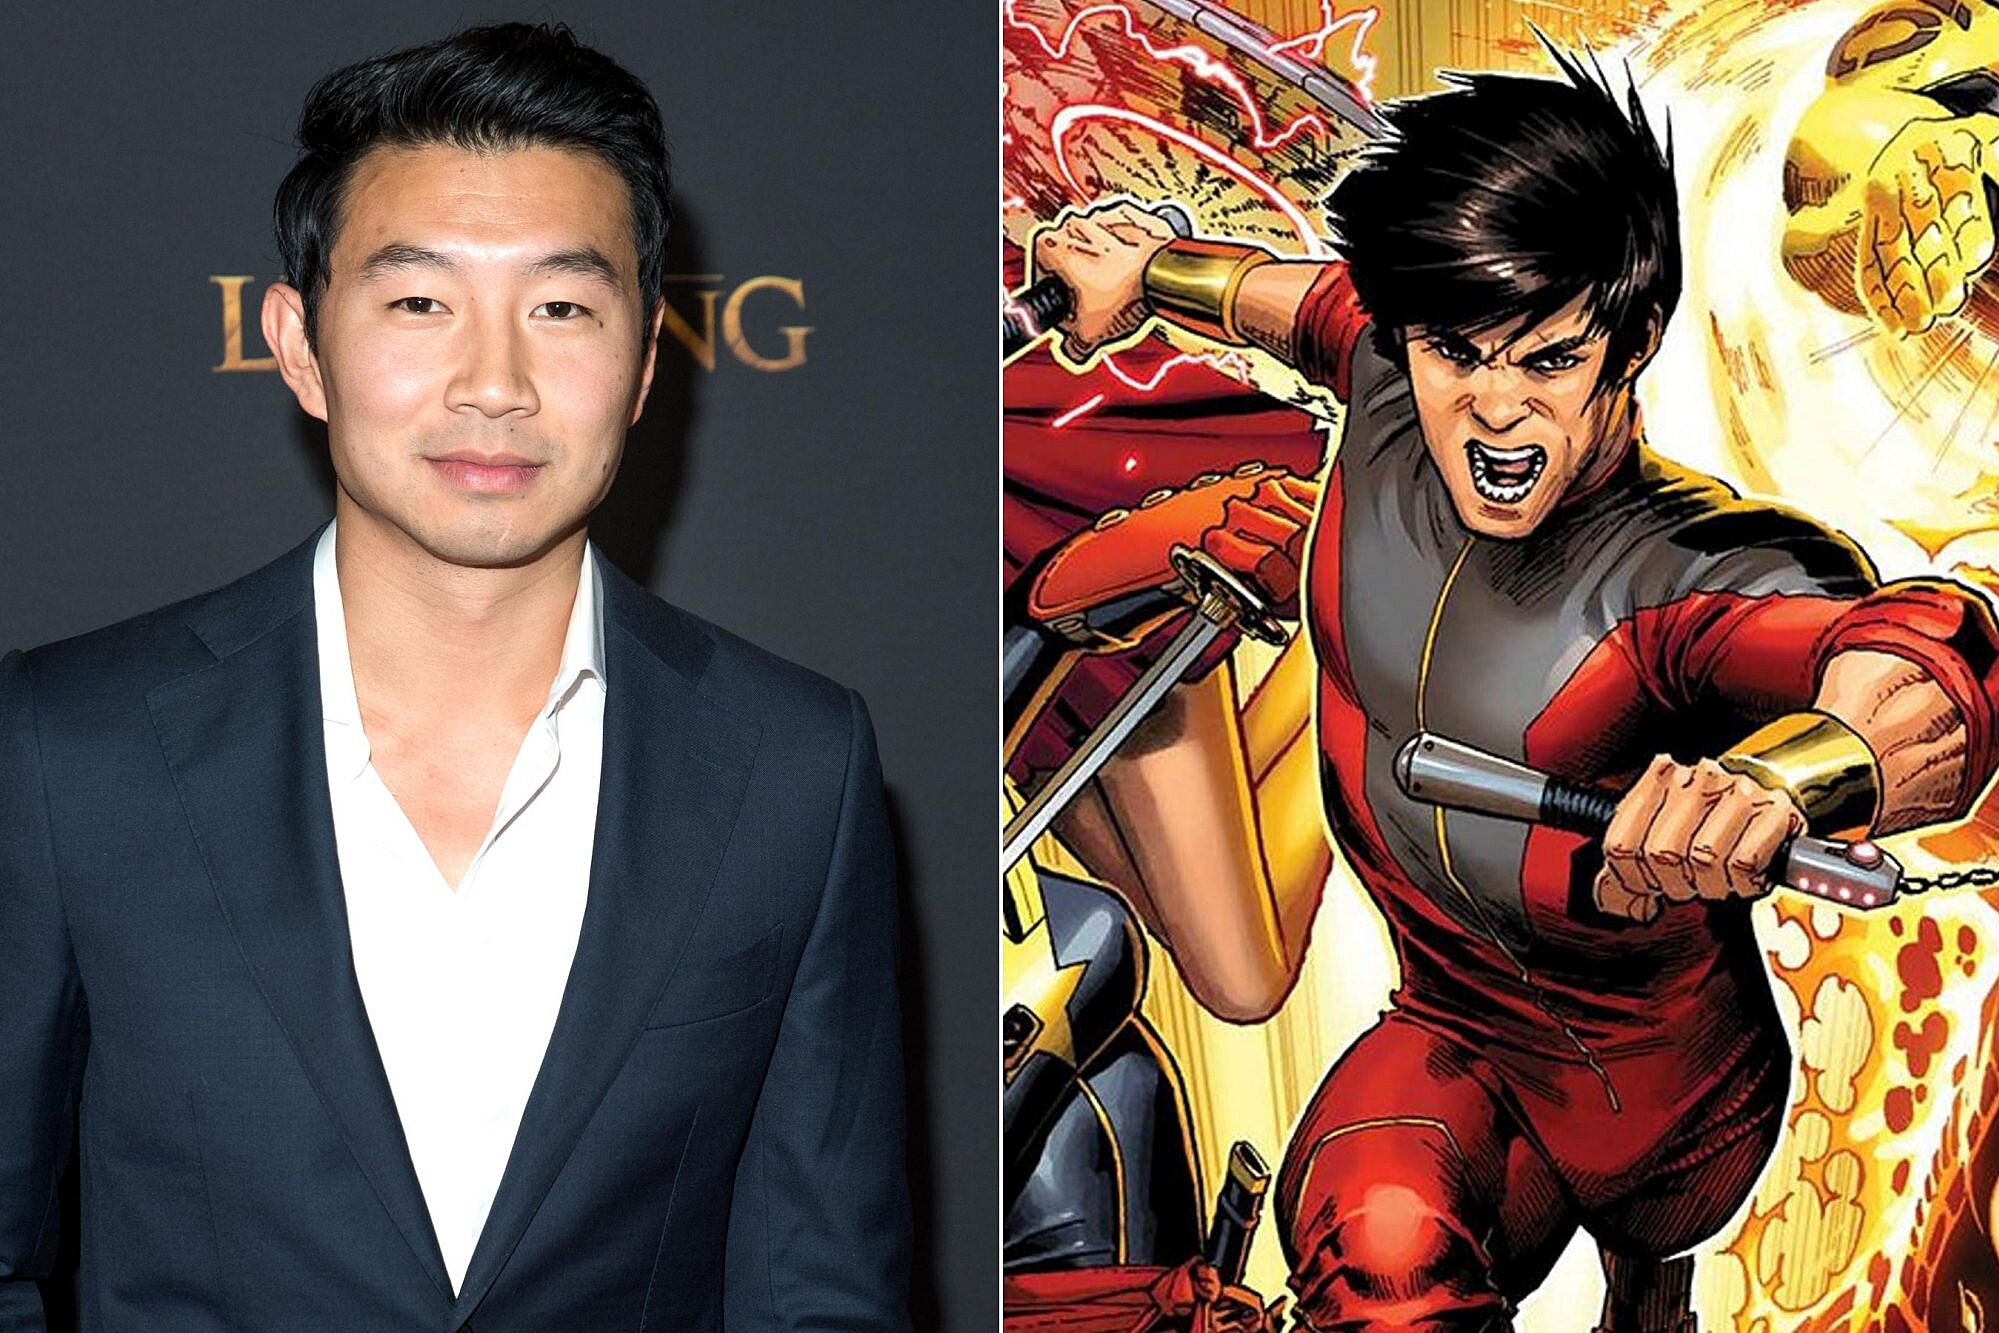 Shang-Chi movie details revealed by Marvel at Comic-Con | EW.com